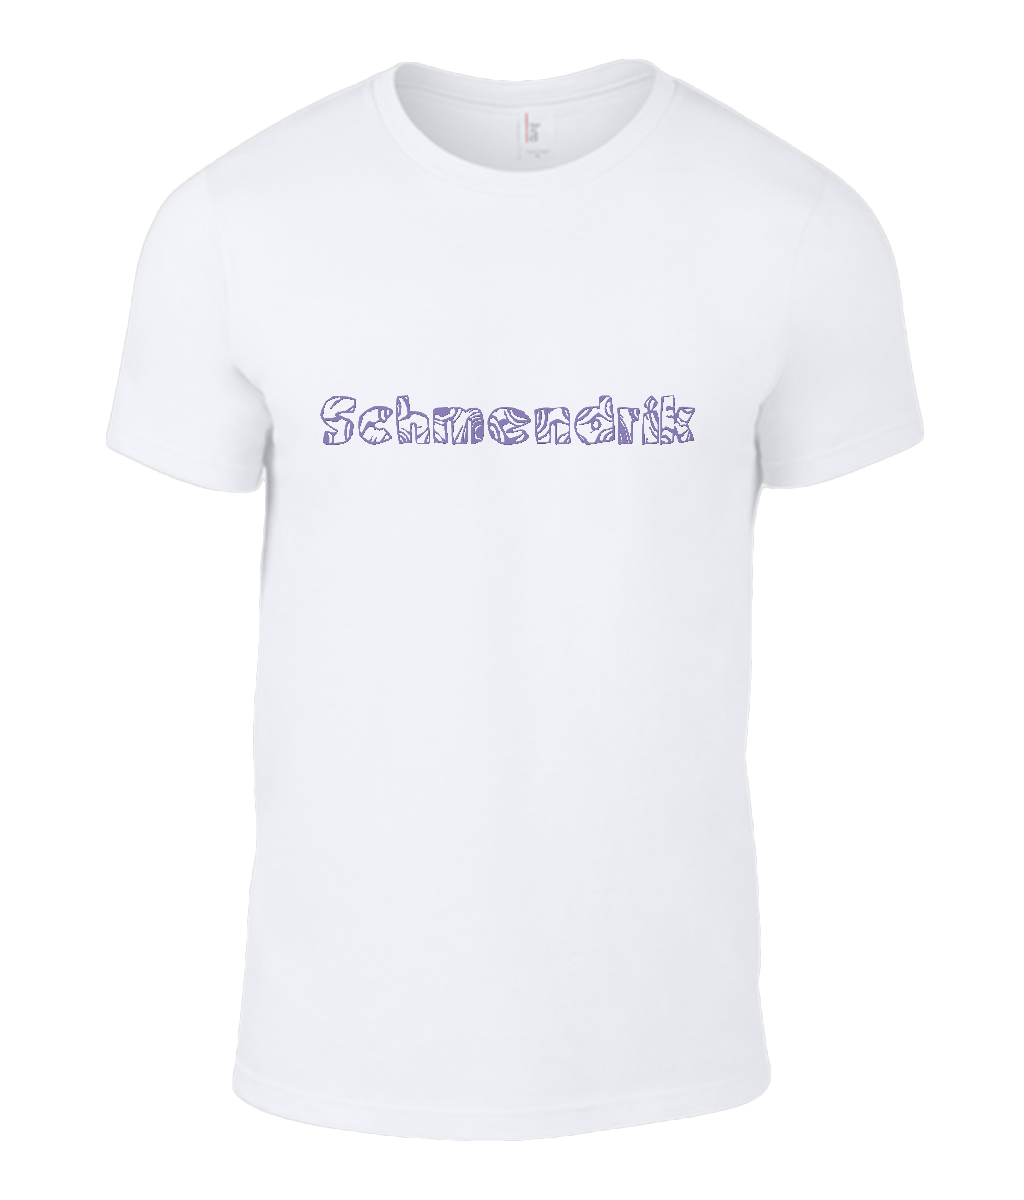 Round Neck T-Shirt - Schmendrick - Lokshen Pudding UK - White